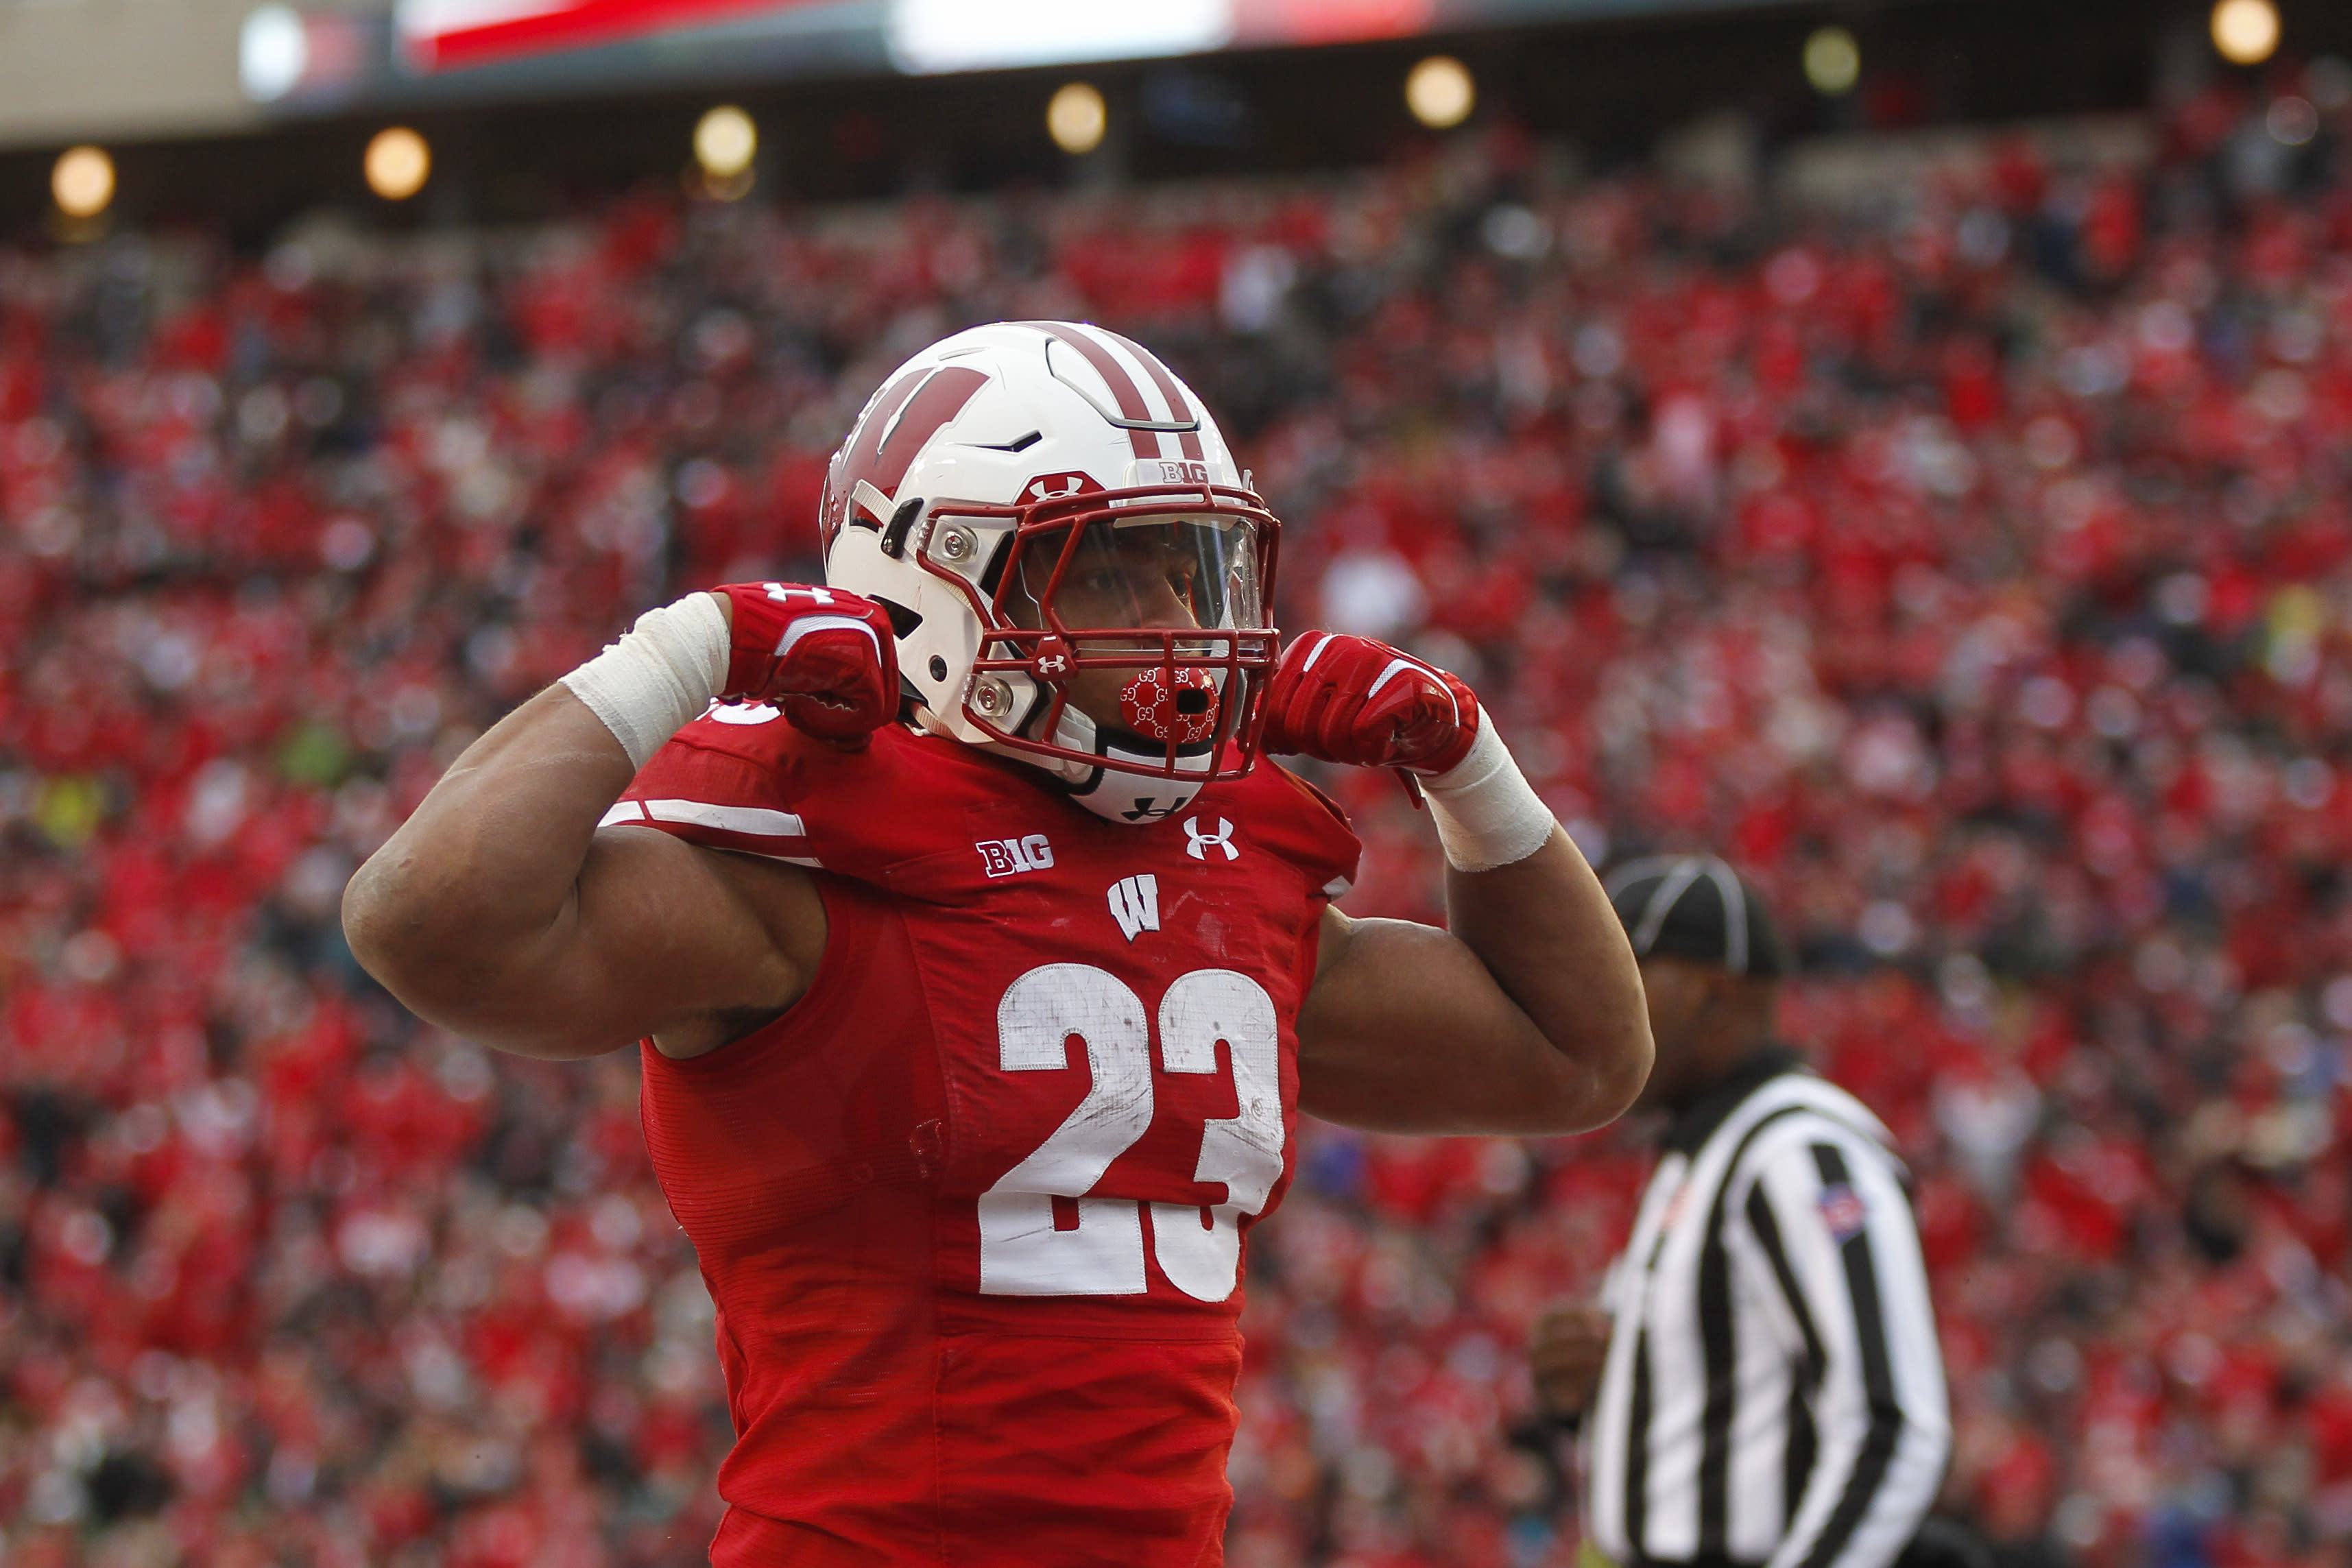 Wisconsin running back Jonathan Taylor celebrates a touchdown against Michigan State during the second half of an NCAA college football game Saturday, Oct. 12, 2019, in Madison, Wis. Wisconsin won 38-0. (AP Photo/Andy Manis)